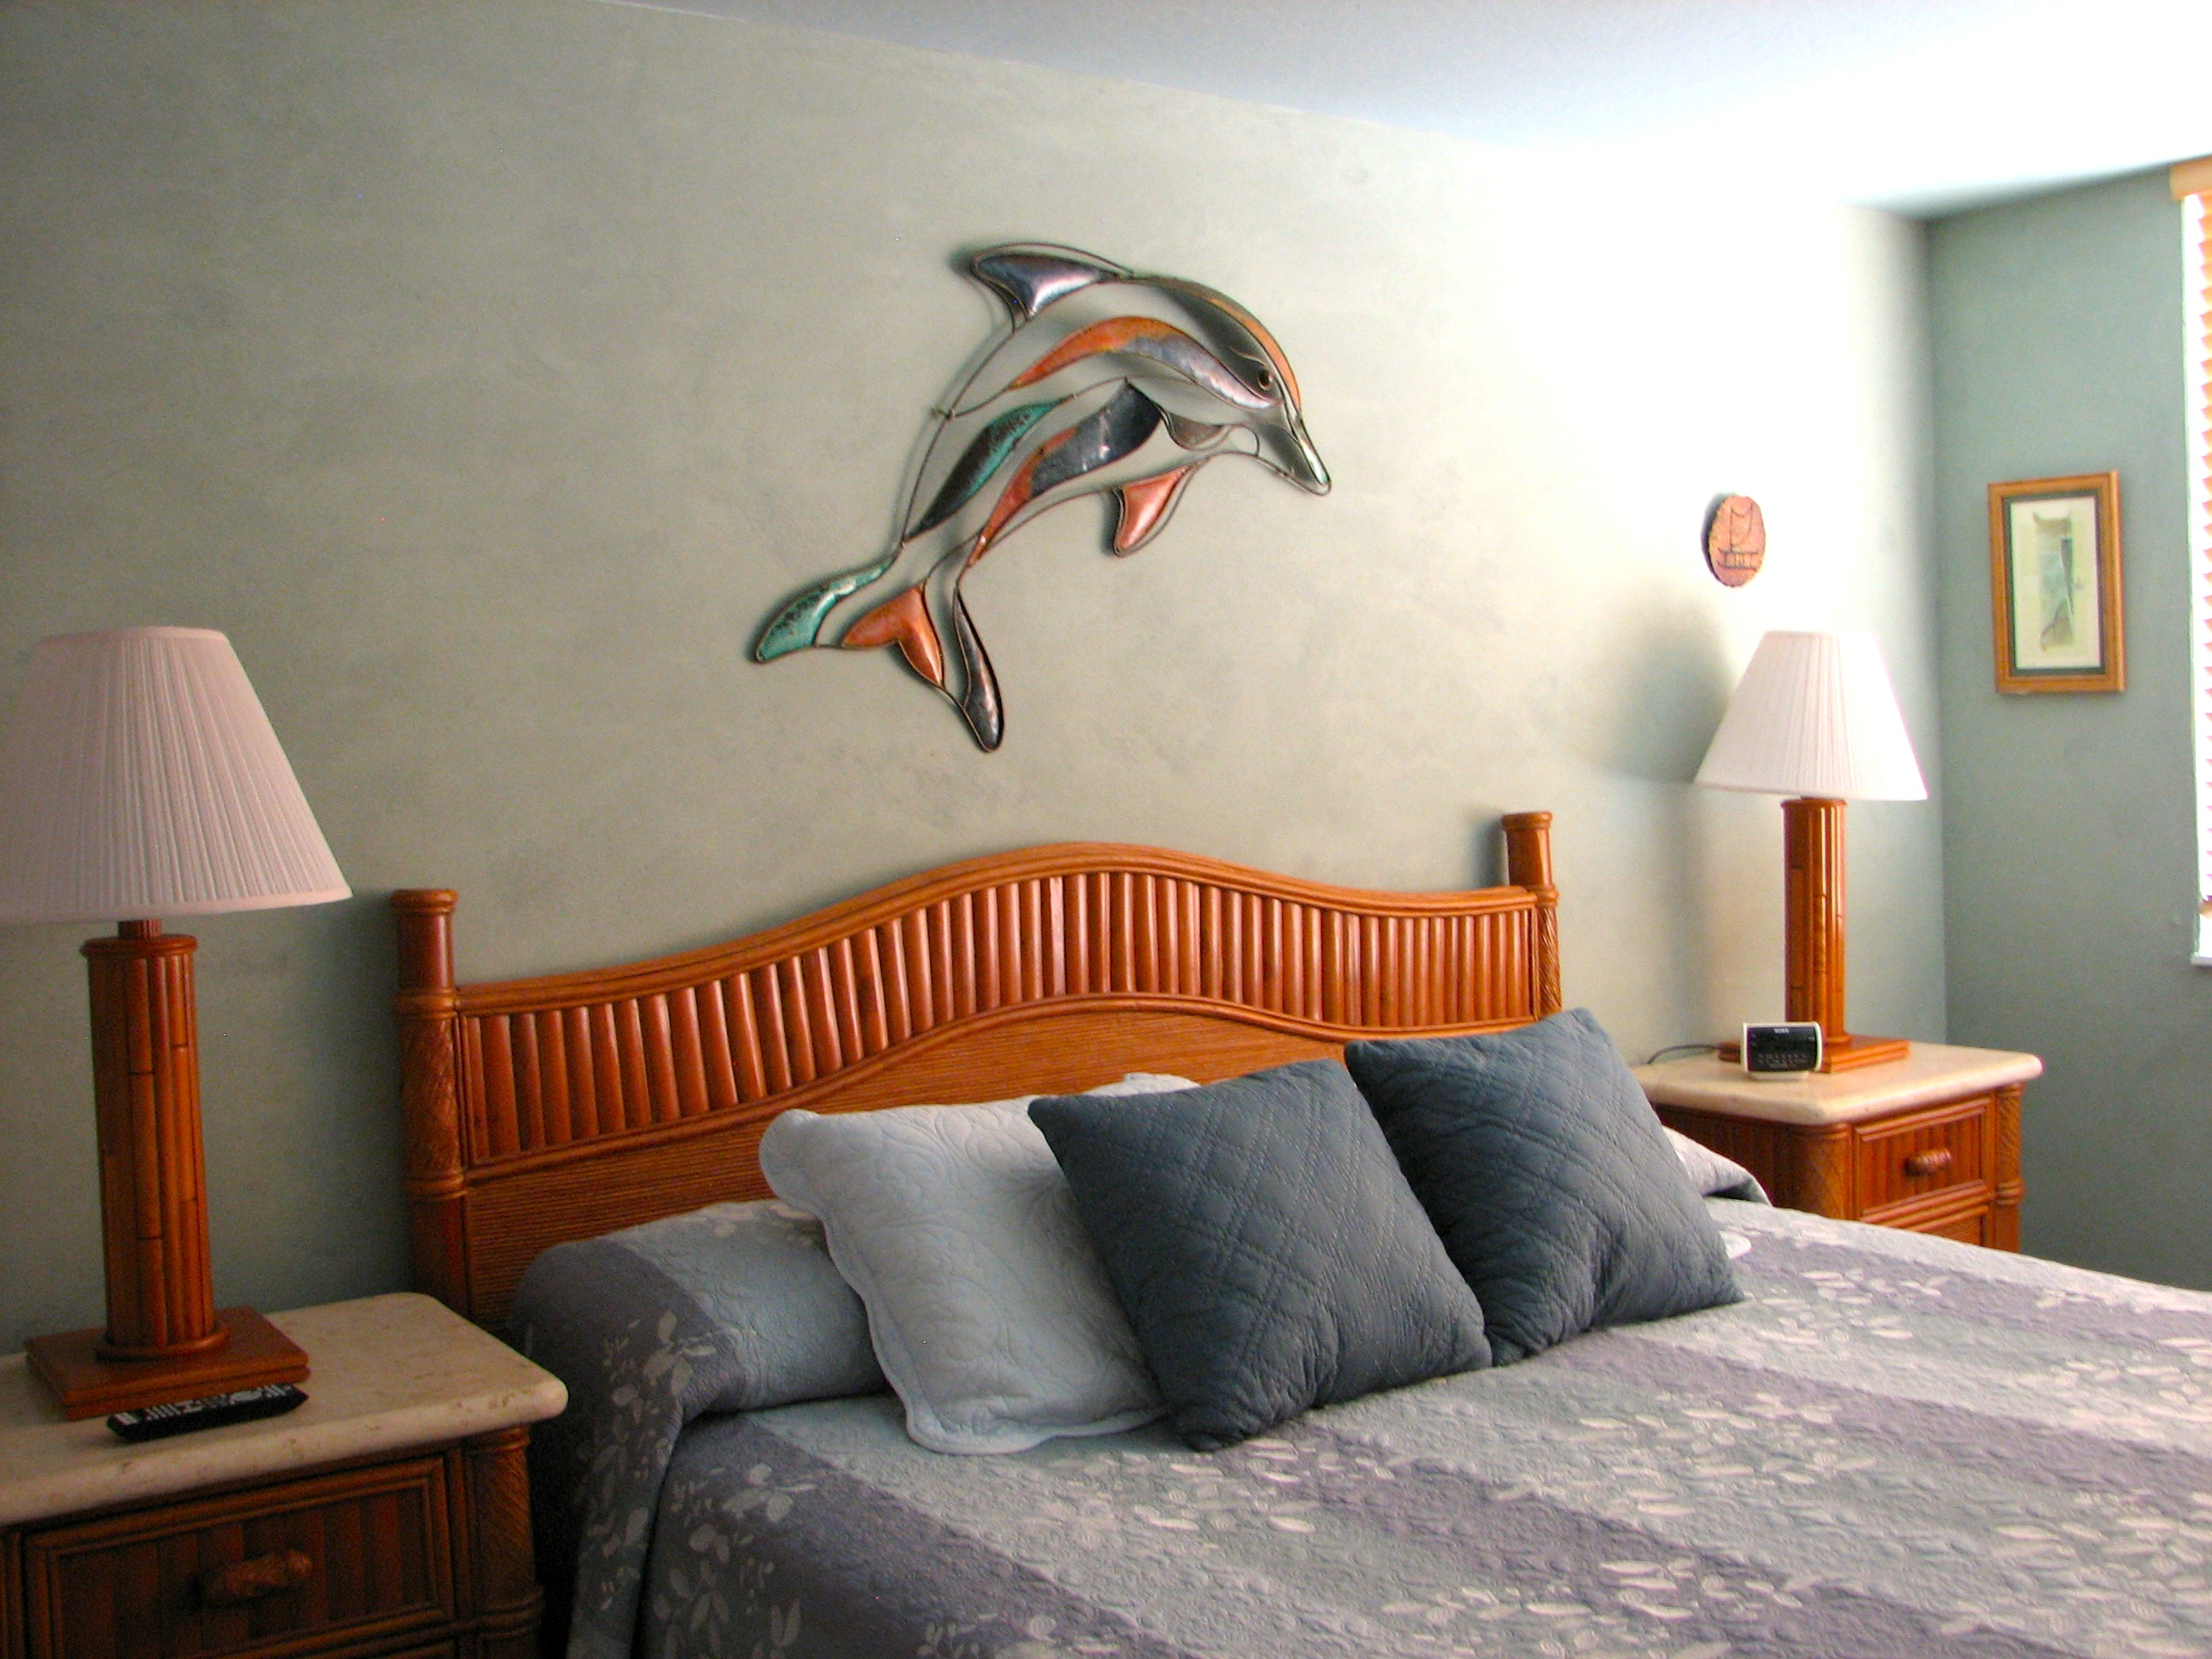 King bed in your oceanfront bedroom, let the wave lull you to sleep.